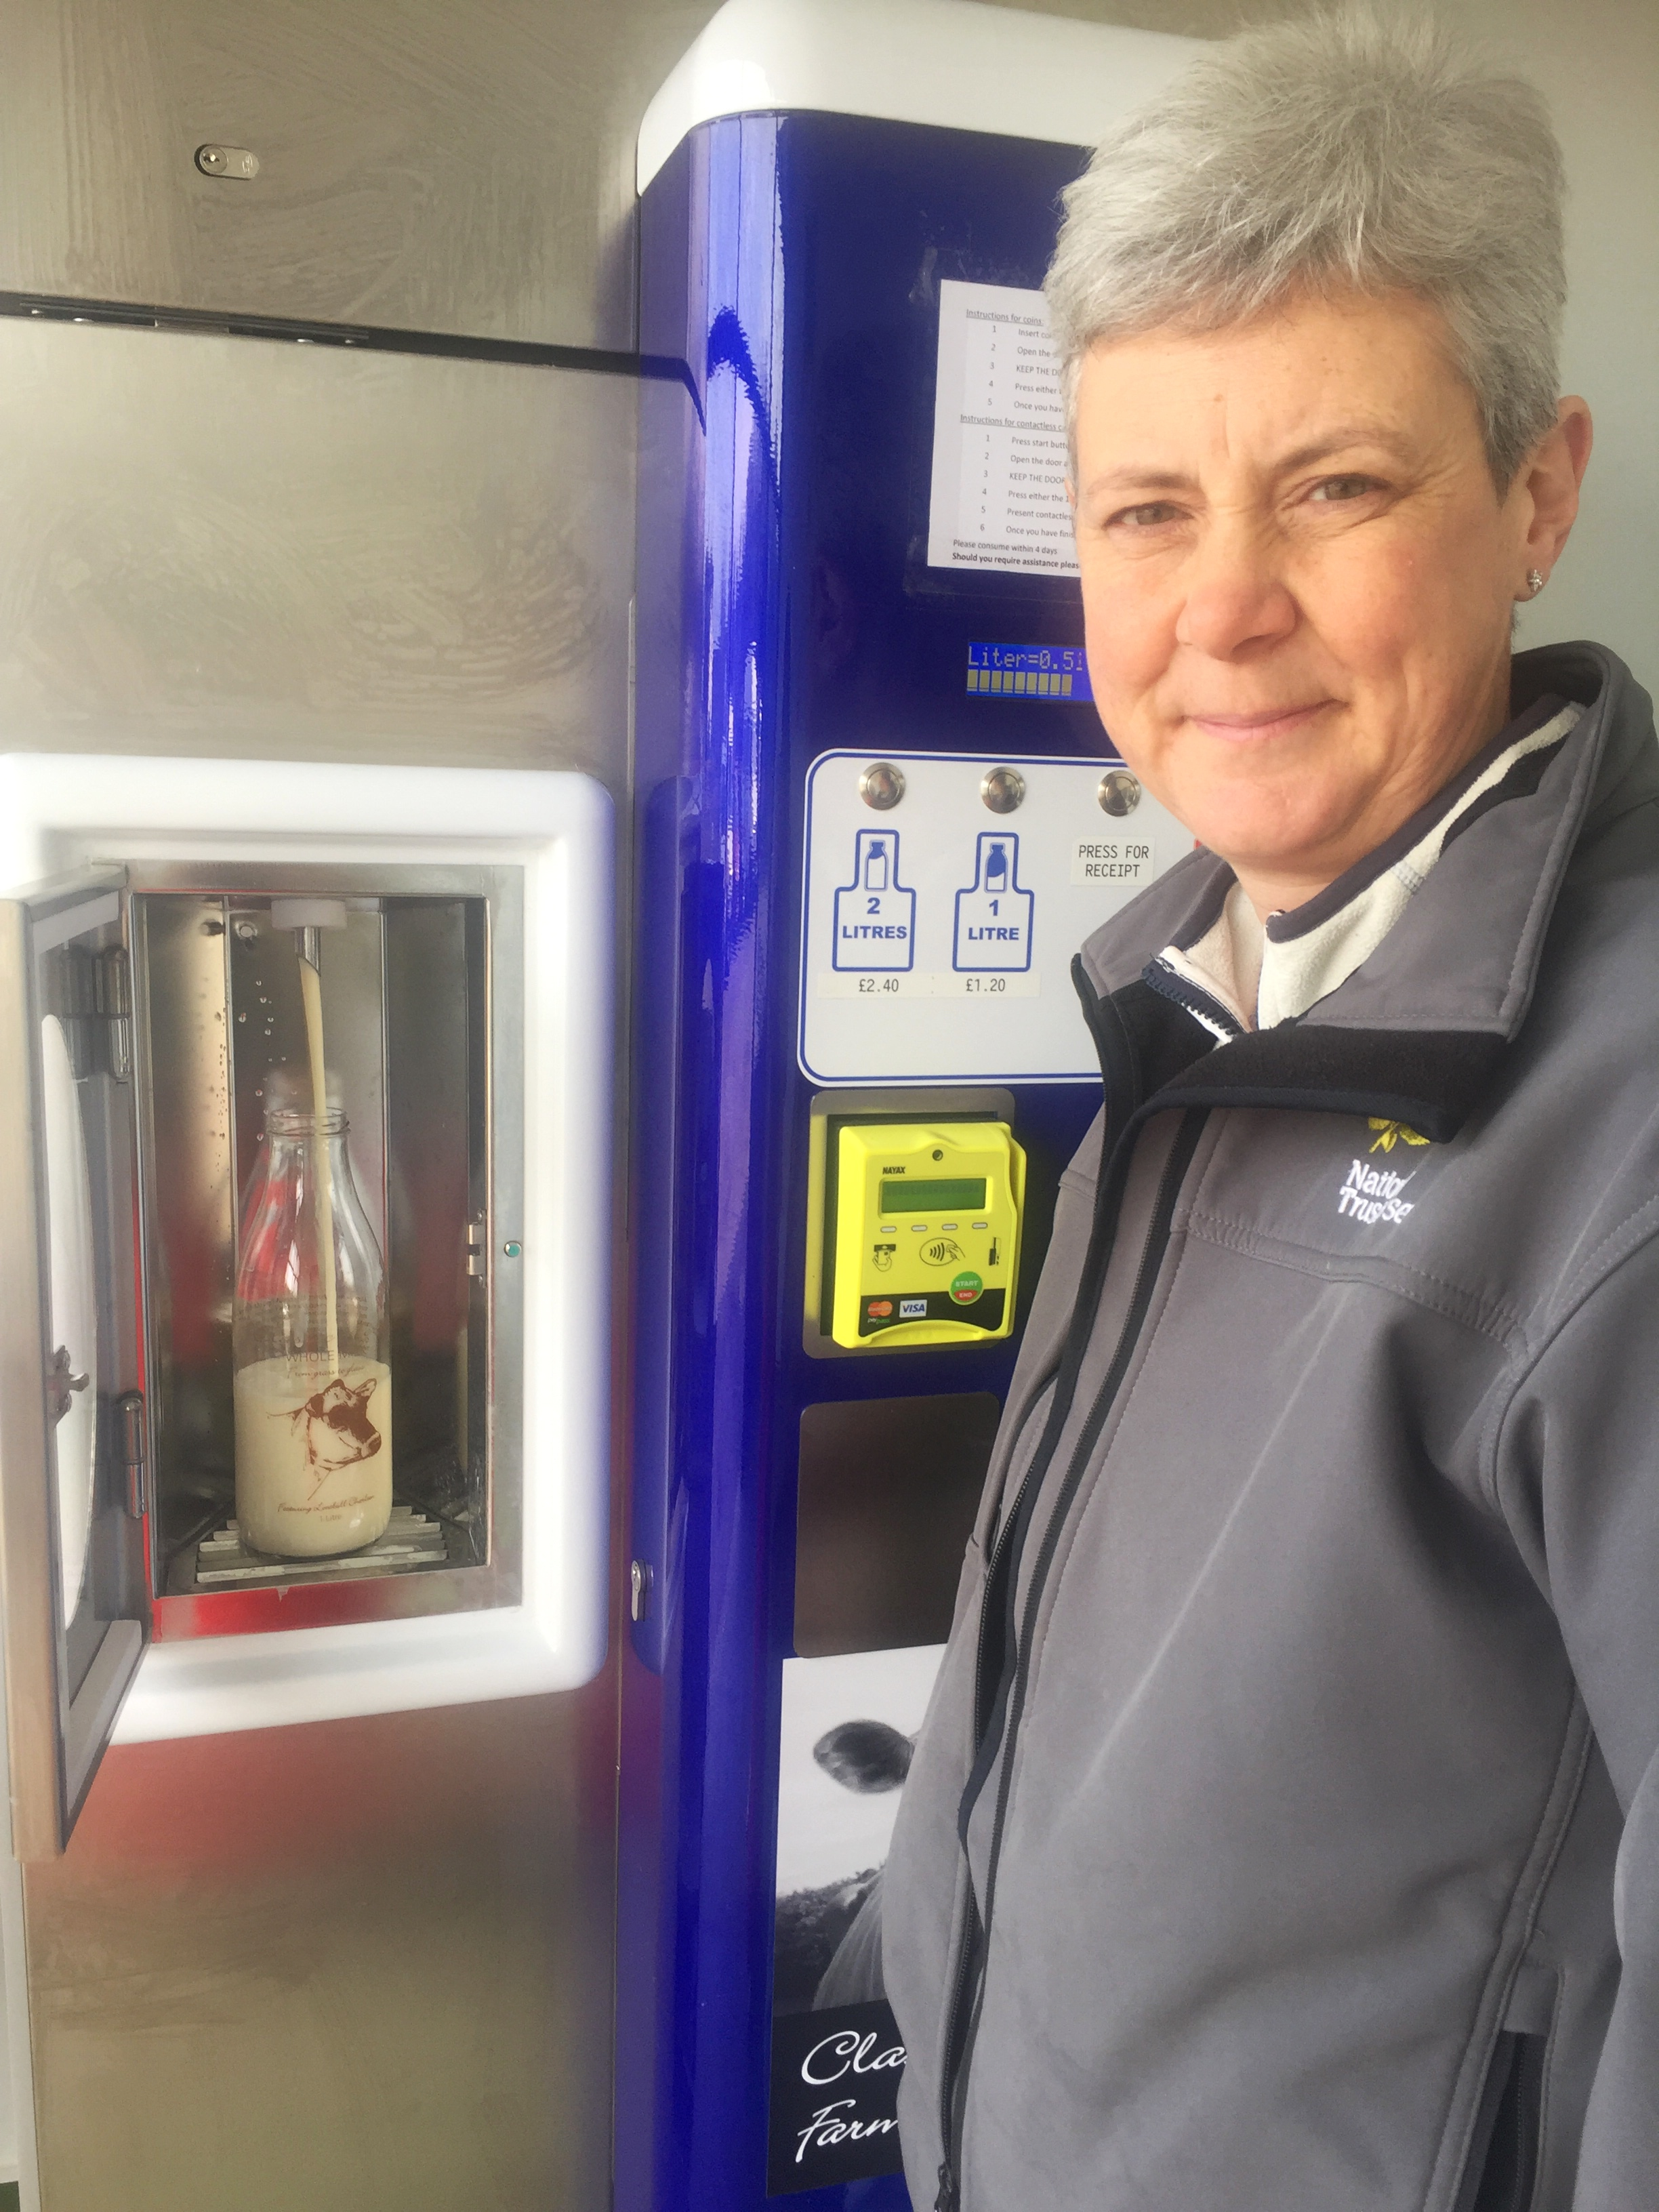 Classic Herd launches milk vending machine